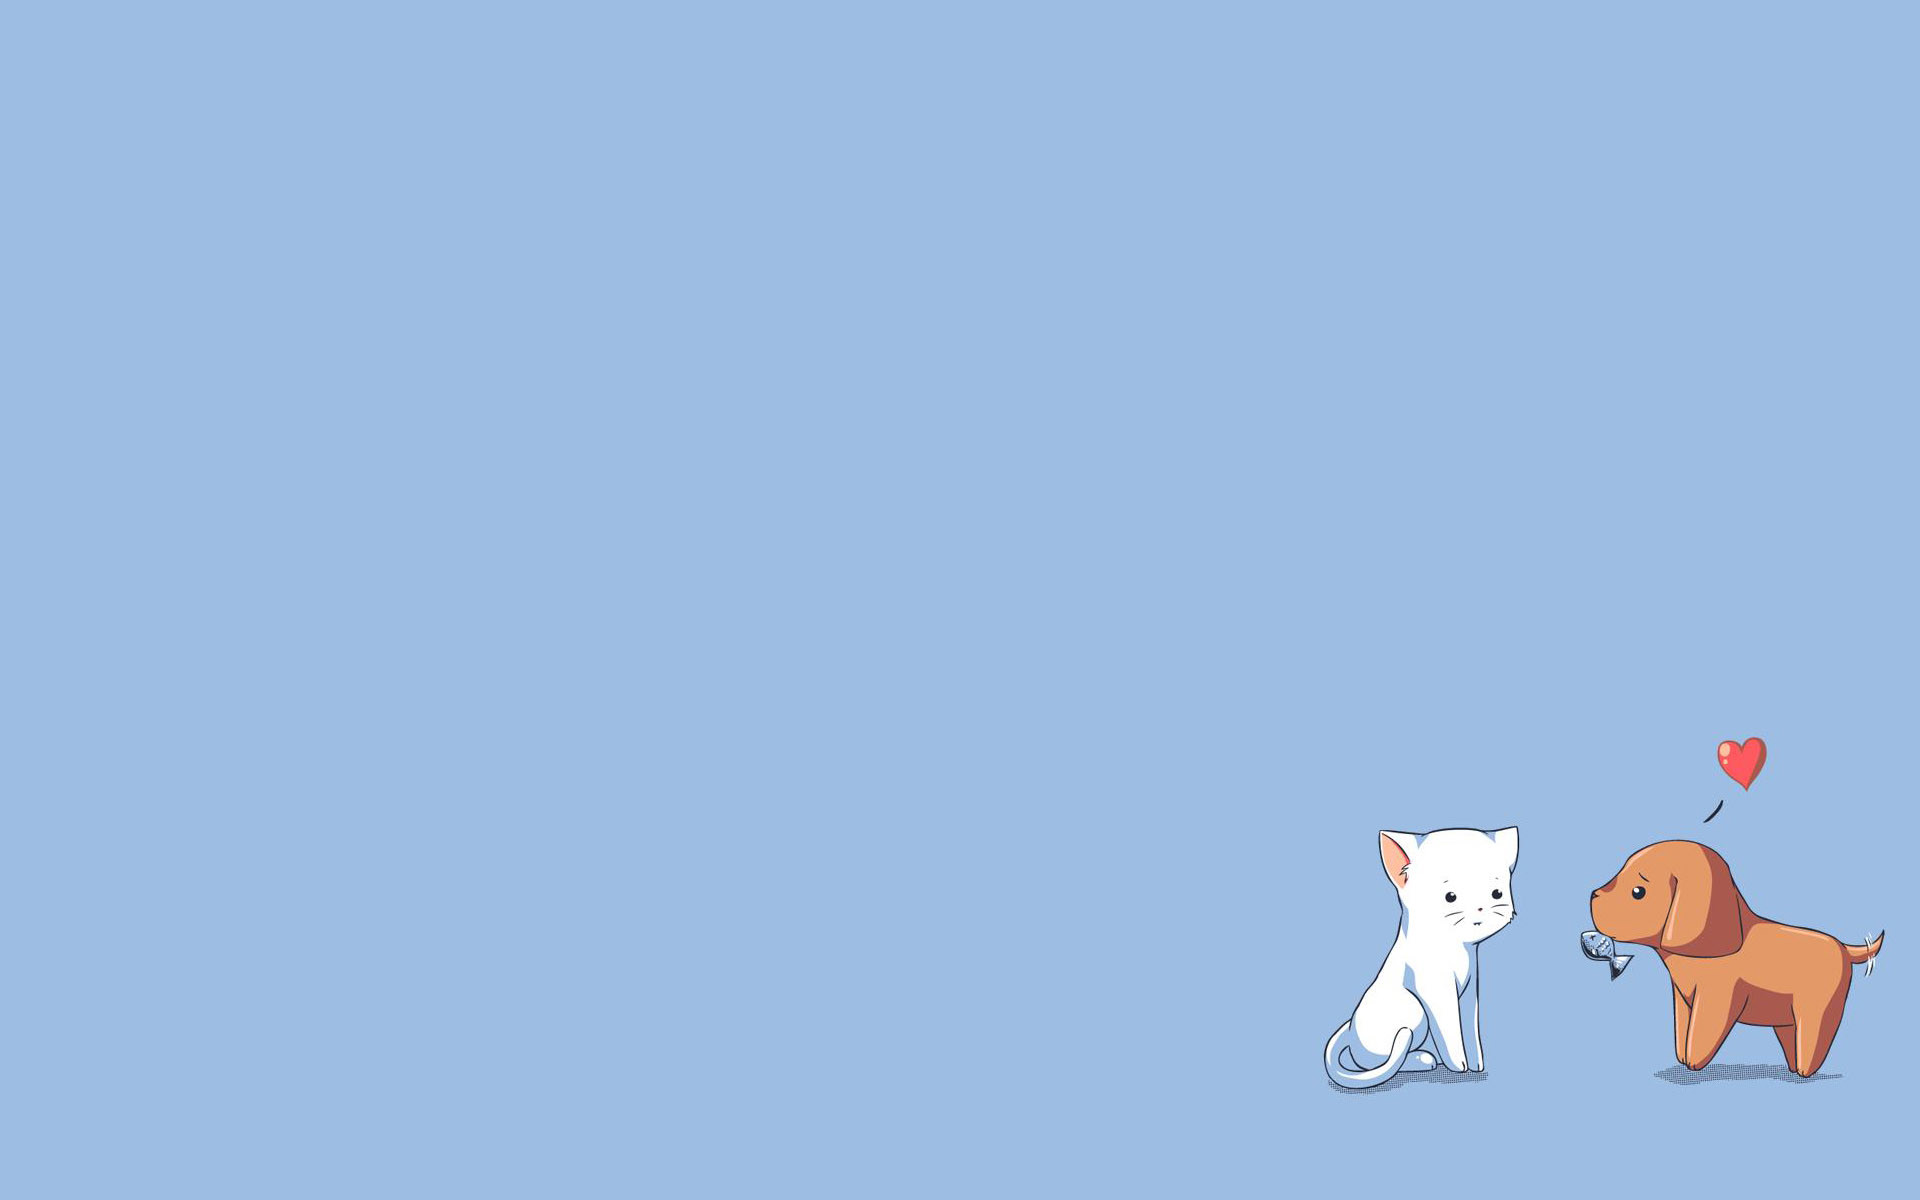 simple cute wallpaper (65+ images)